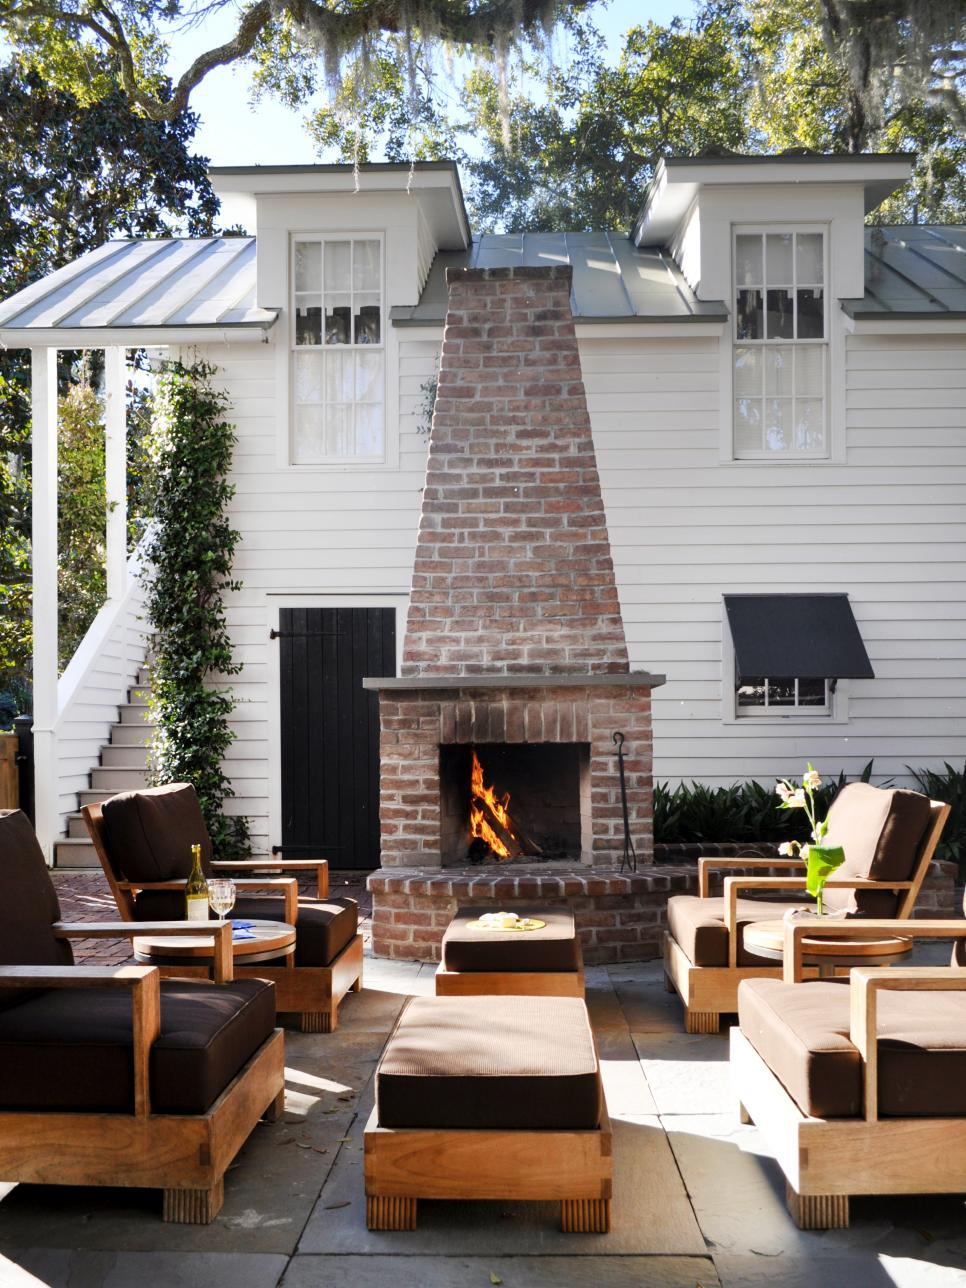 outdoor fireplace ideas design ideas for outdoor fireplaces hgtv - Outdoor Fireplace Design Ideas